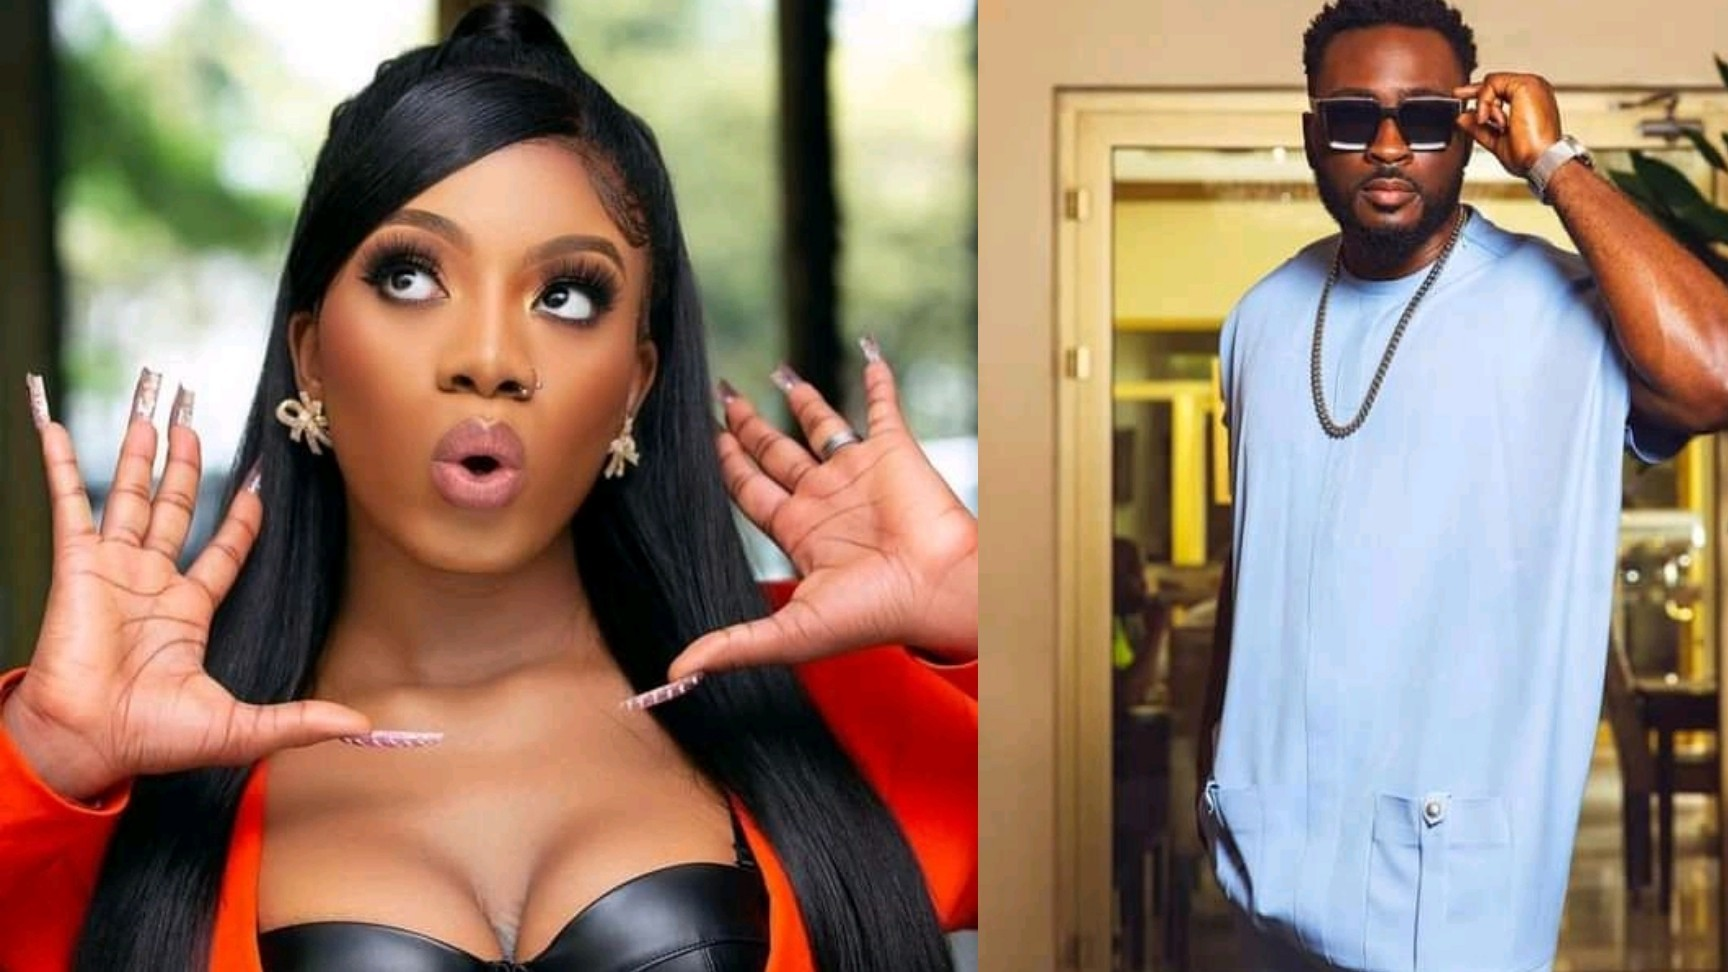 I actually touched it' – Angel, on what she did with Pere behind cameras